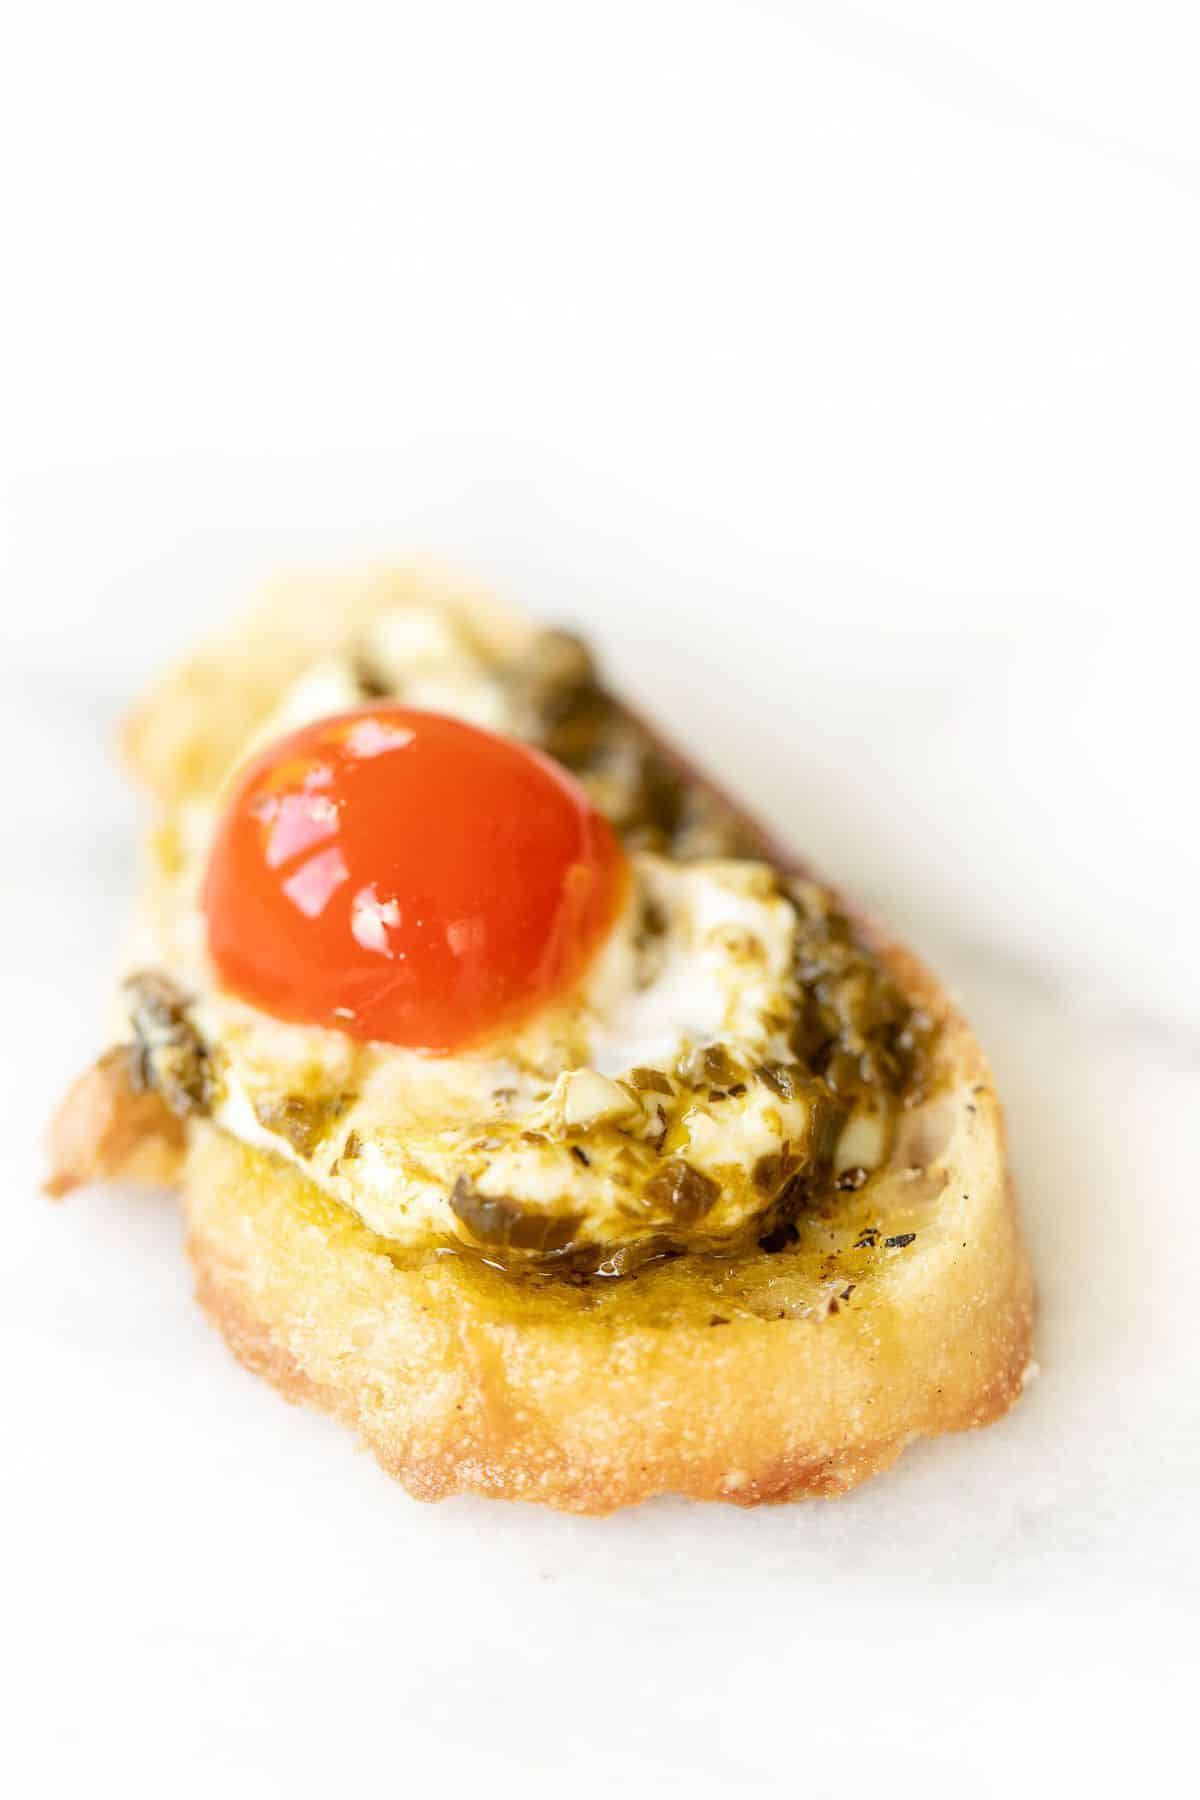 Marble surface, single slice of crostini topped with pesto cheese dip and a cherry tomato.